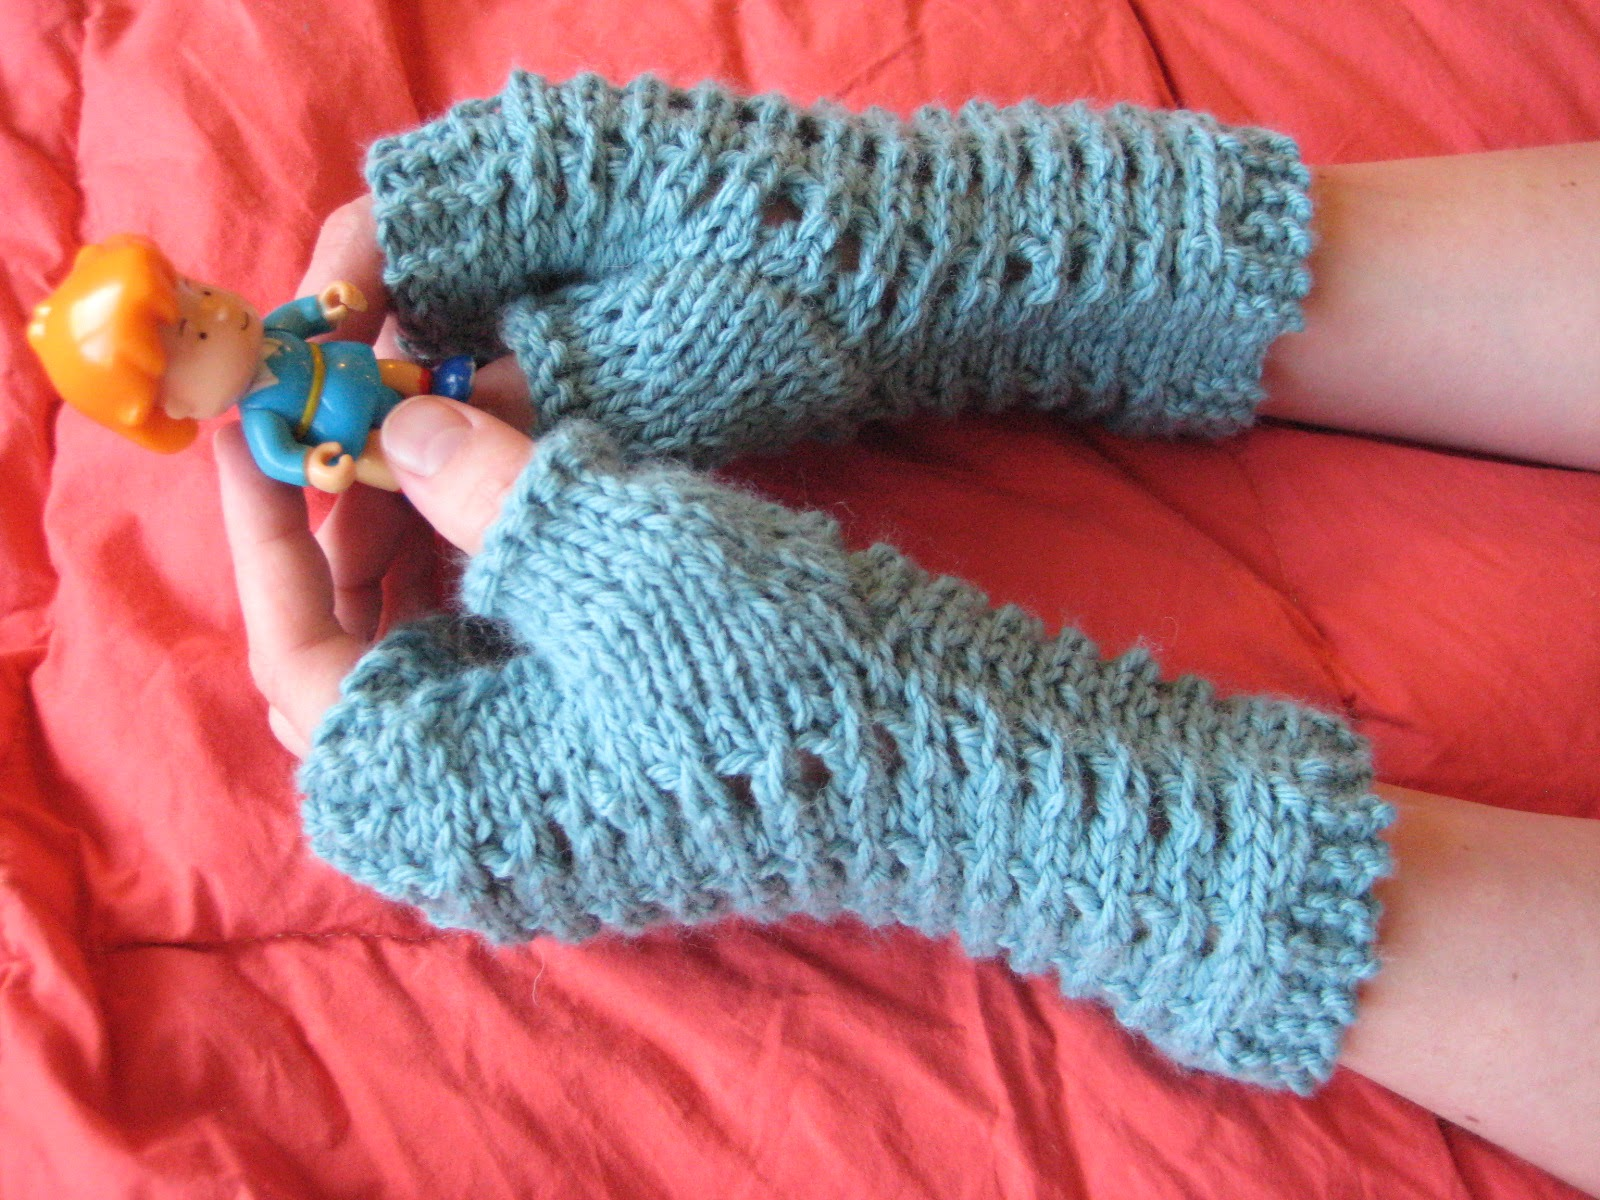 Knitting Stitches Mesh Pattern : Balls to the Walls Knits: Slip-Stitch Mesh Fingerless Gloves